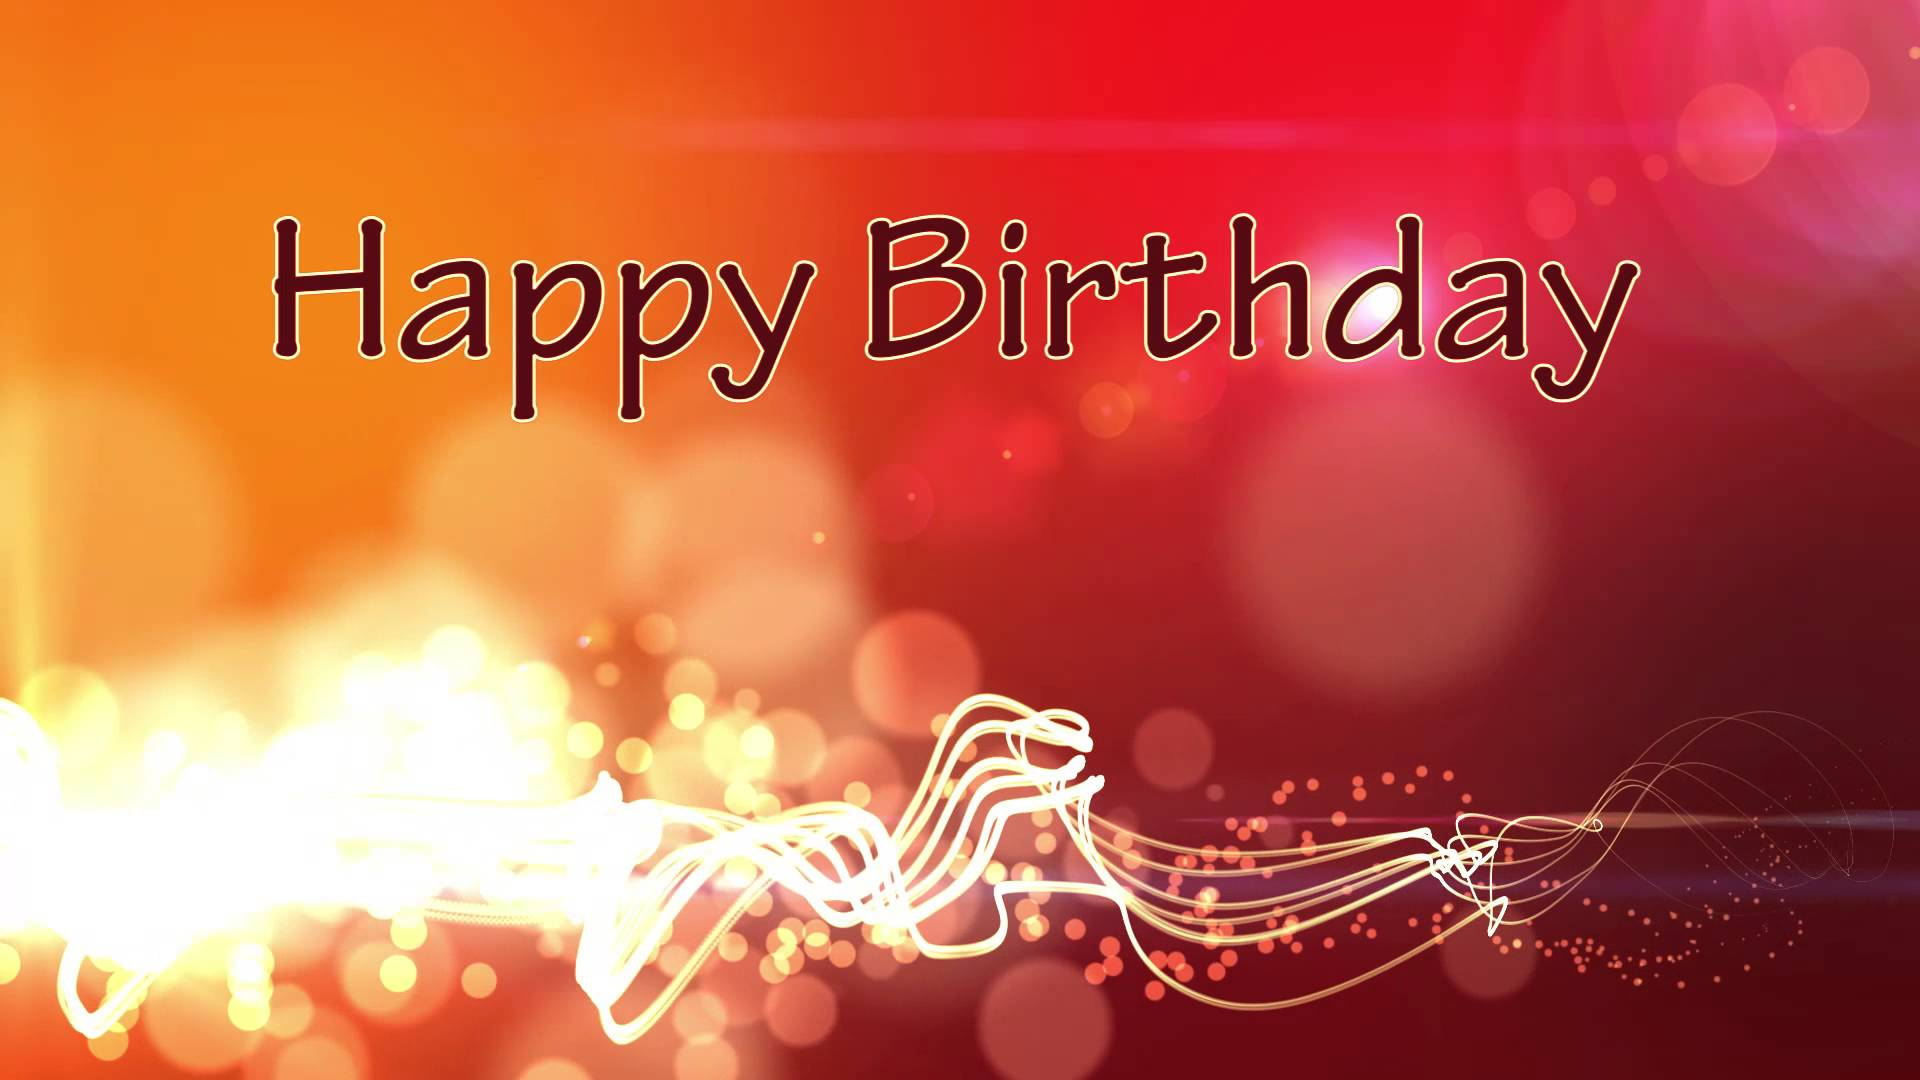 happy birthday wallpaper hd free download